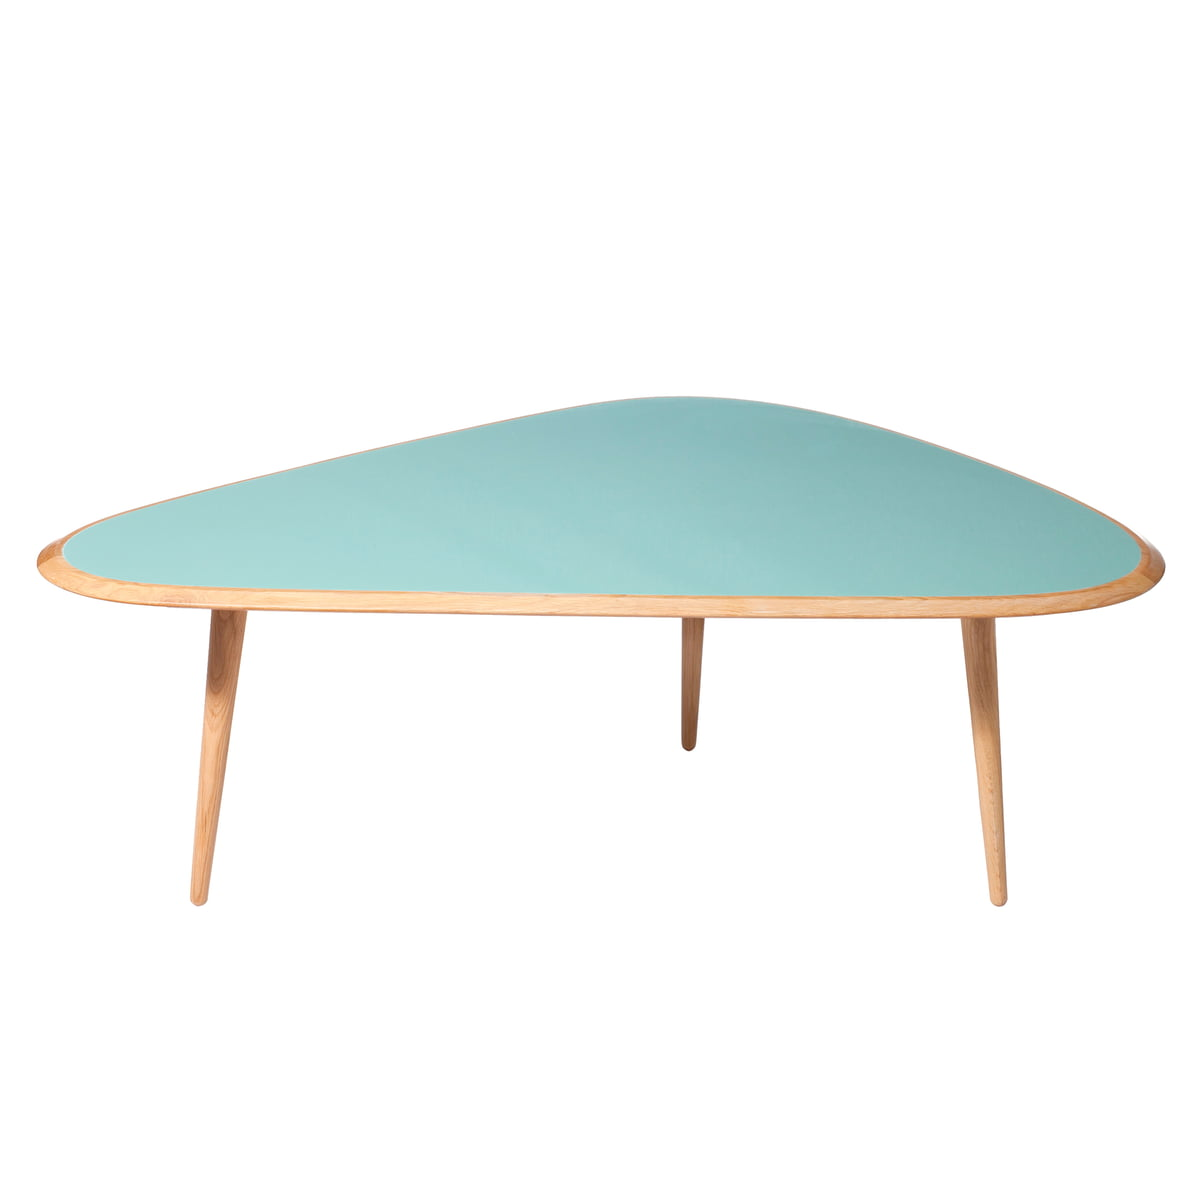 Large Fifties Coffee Table By Red Edition In Mineral Green L09